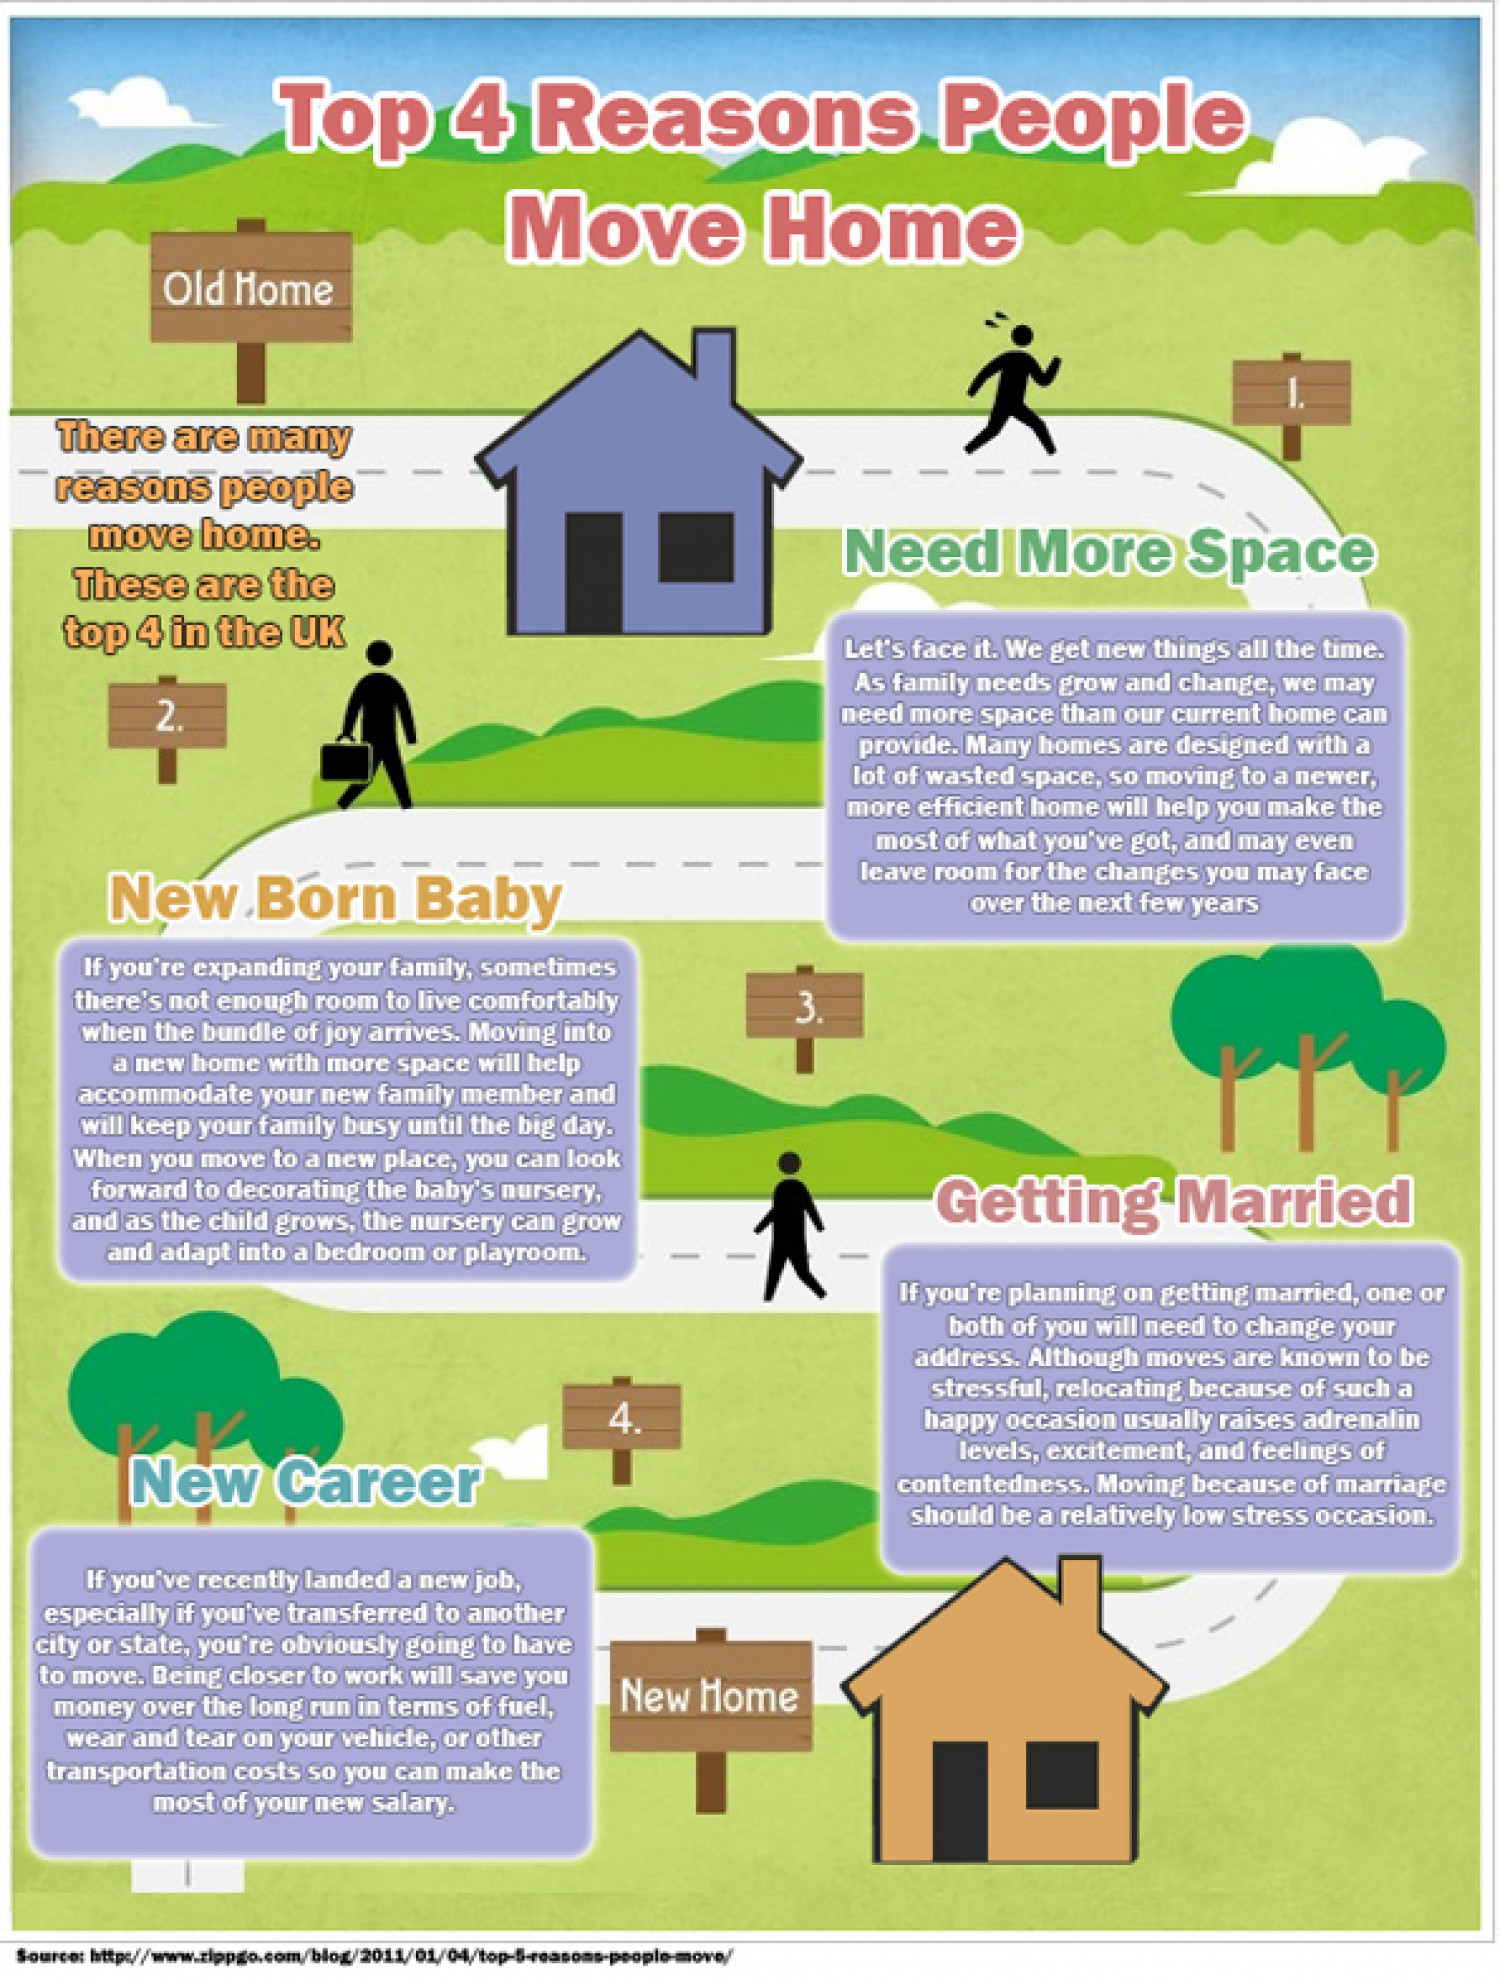 Top 4 Reasons People Move Home Infographic